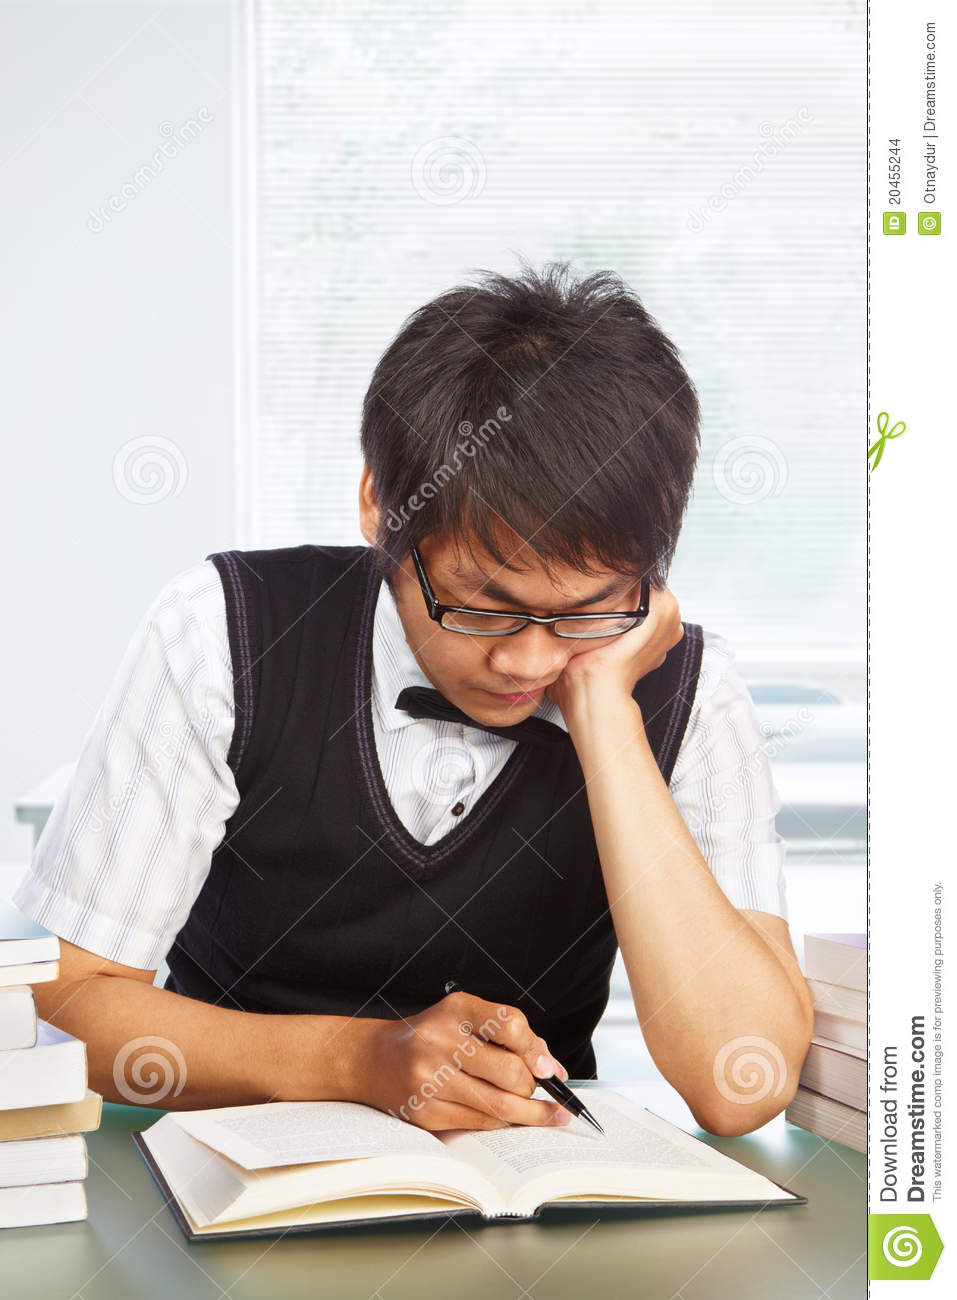 chinese college male student studying stock photo